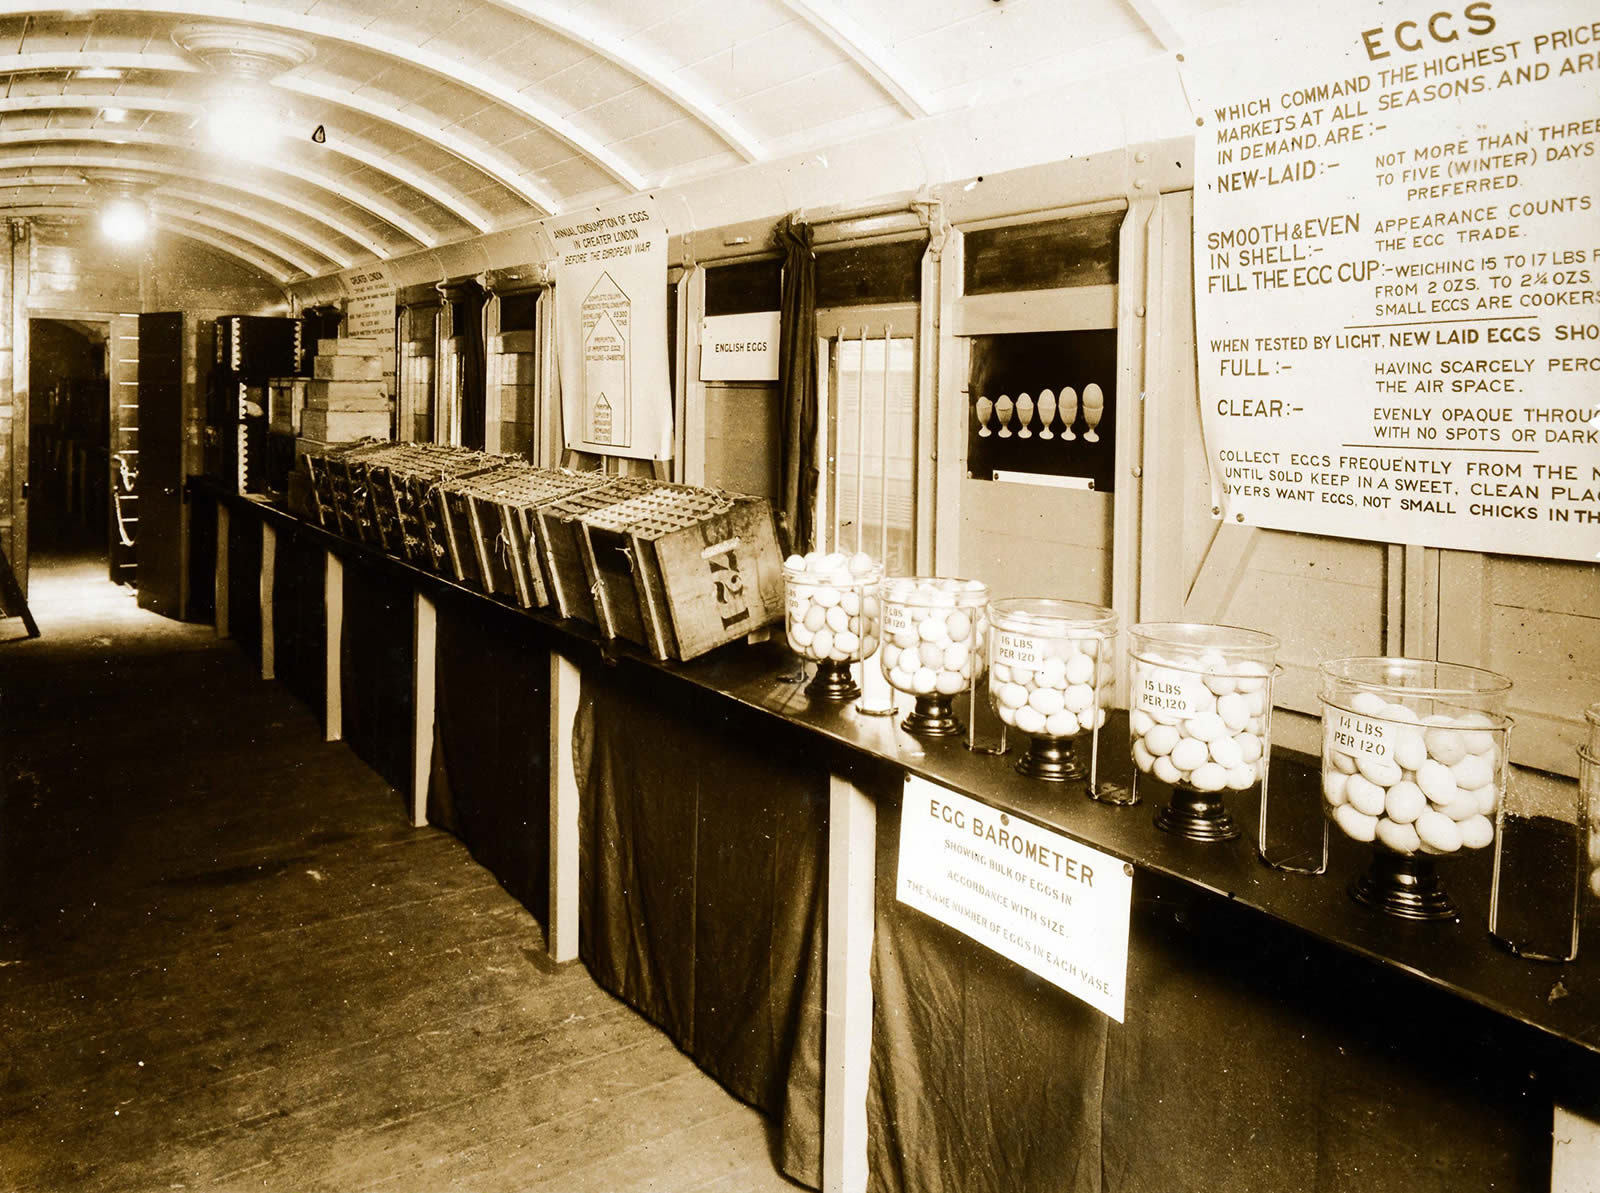 Image of the interior of the Egg and Poultry Demonstration Train RAIL 227_384 _3_October 1916